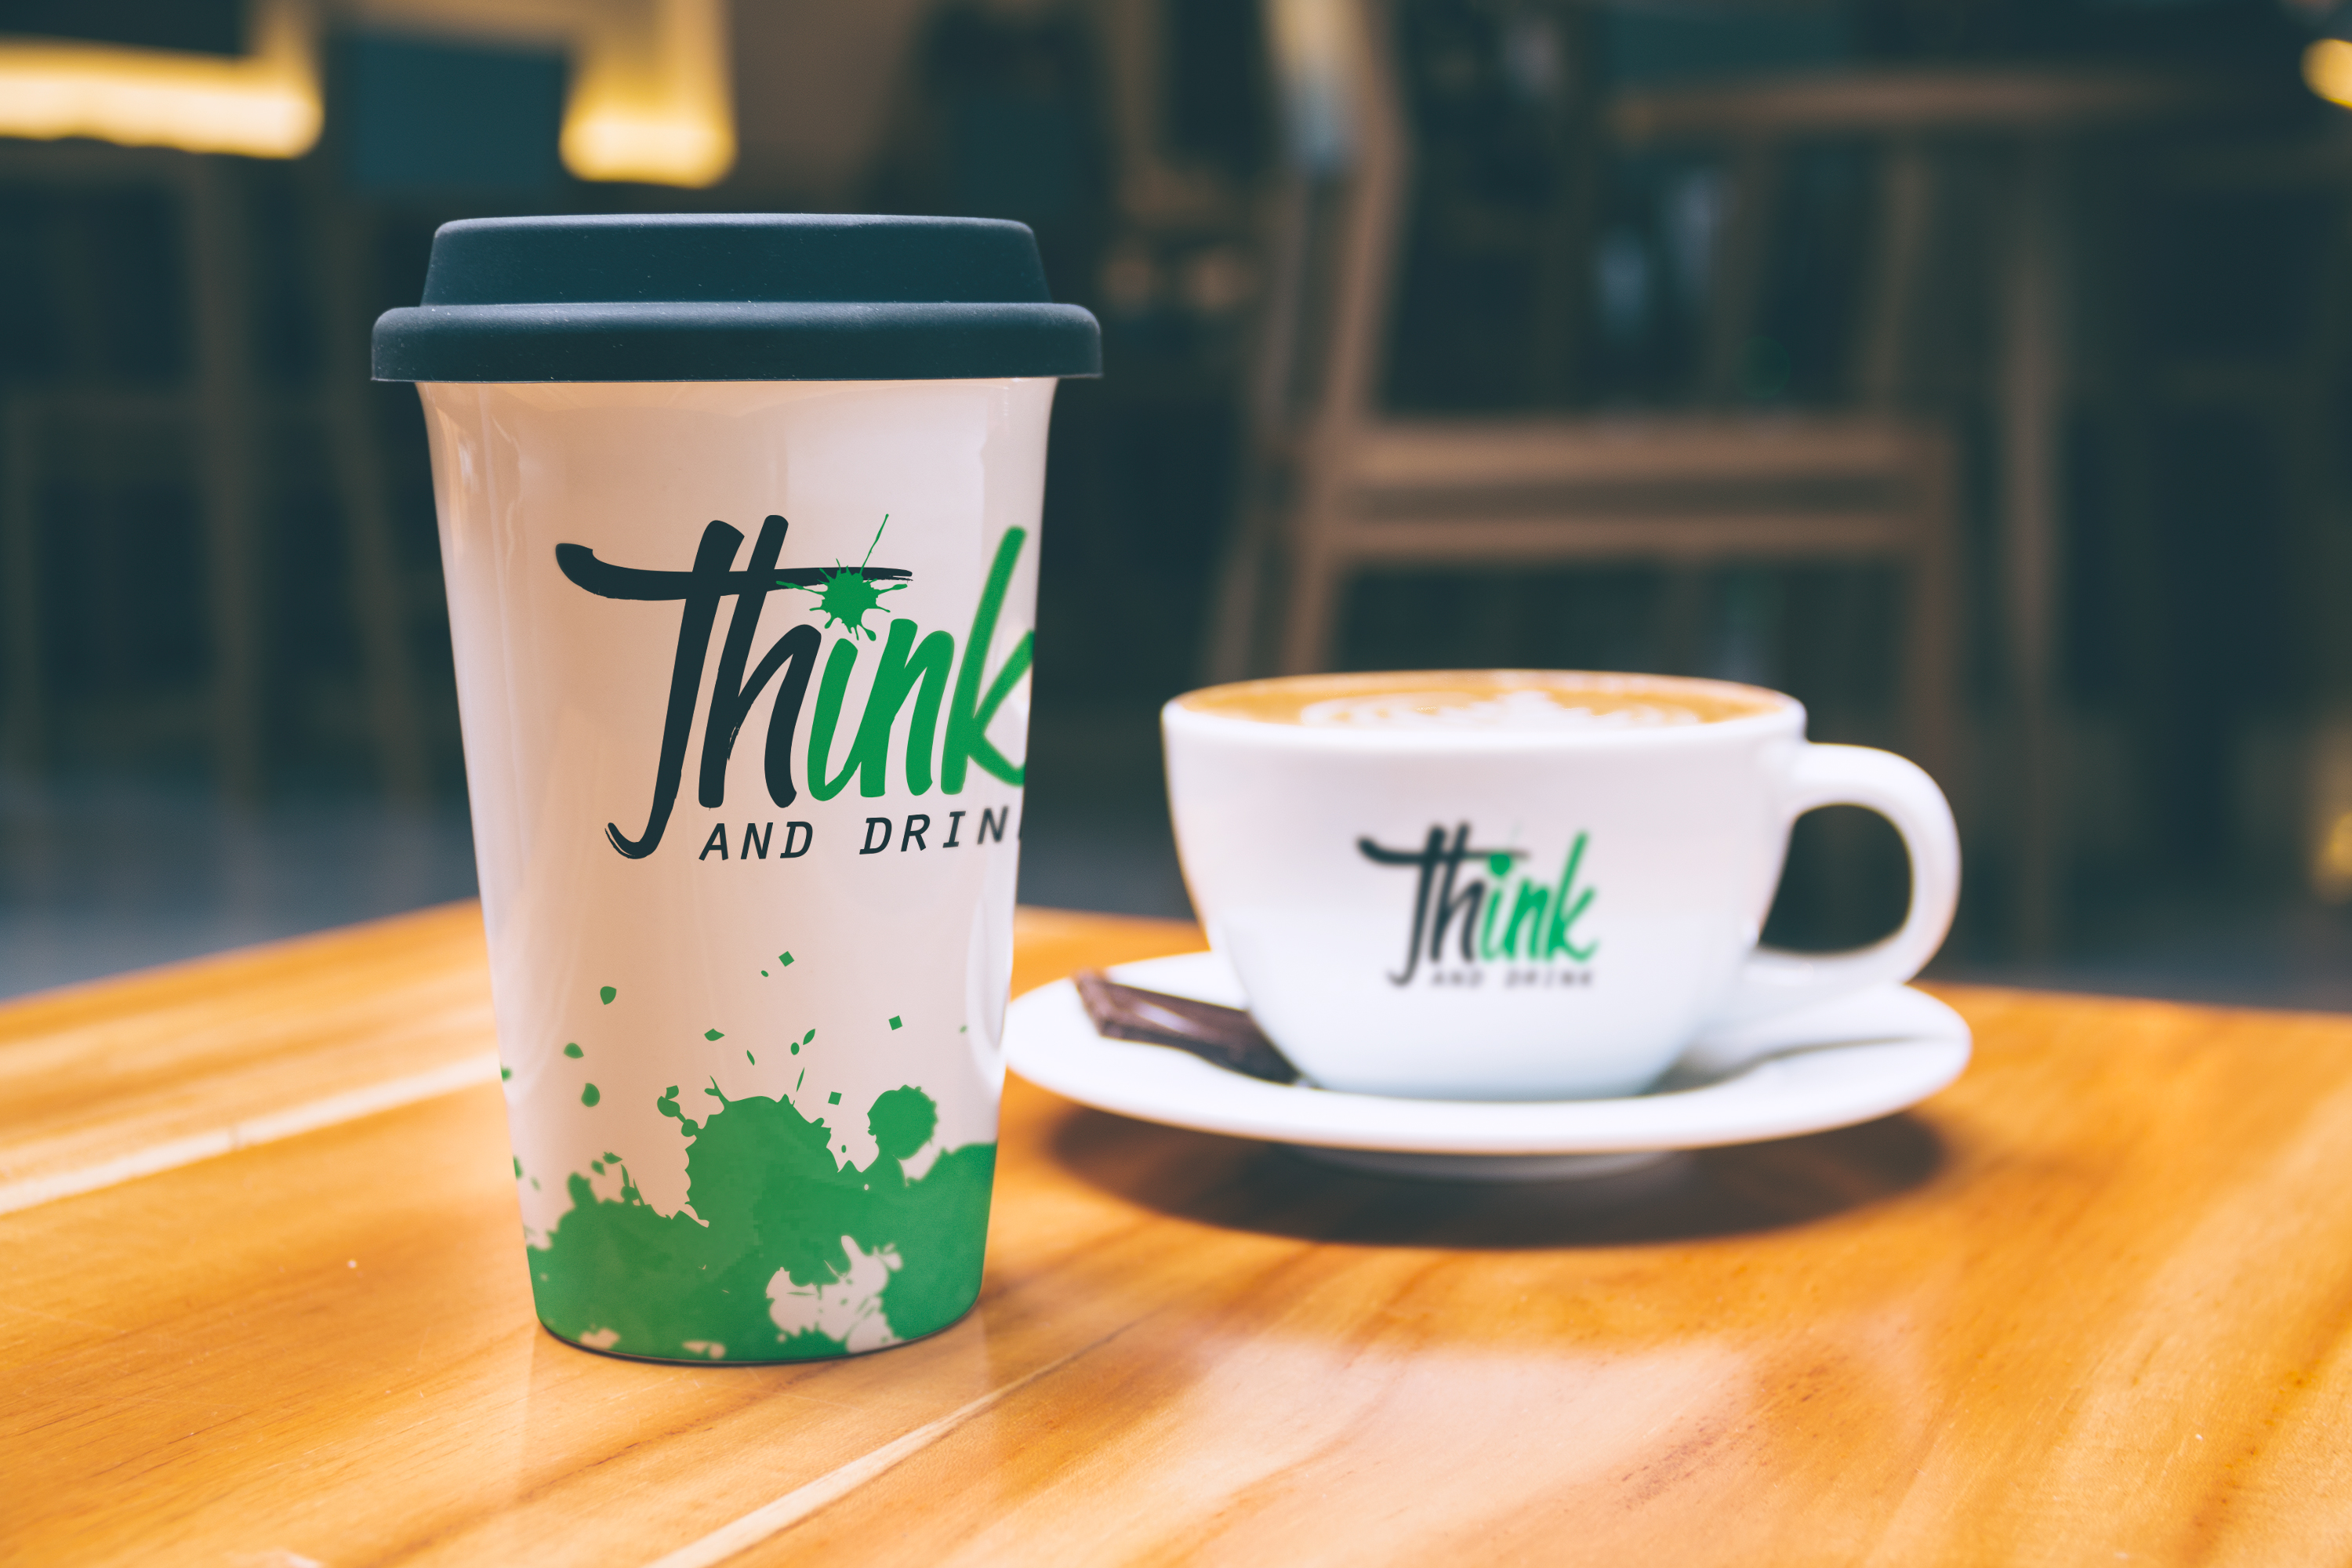 Think Ink and Drink cup design